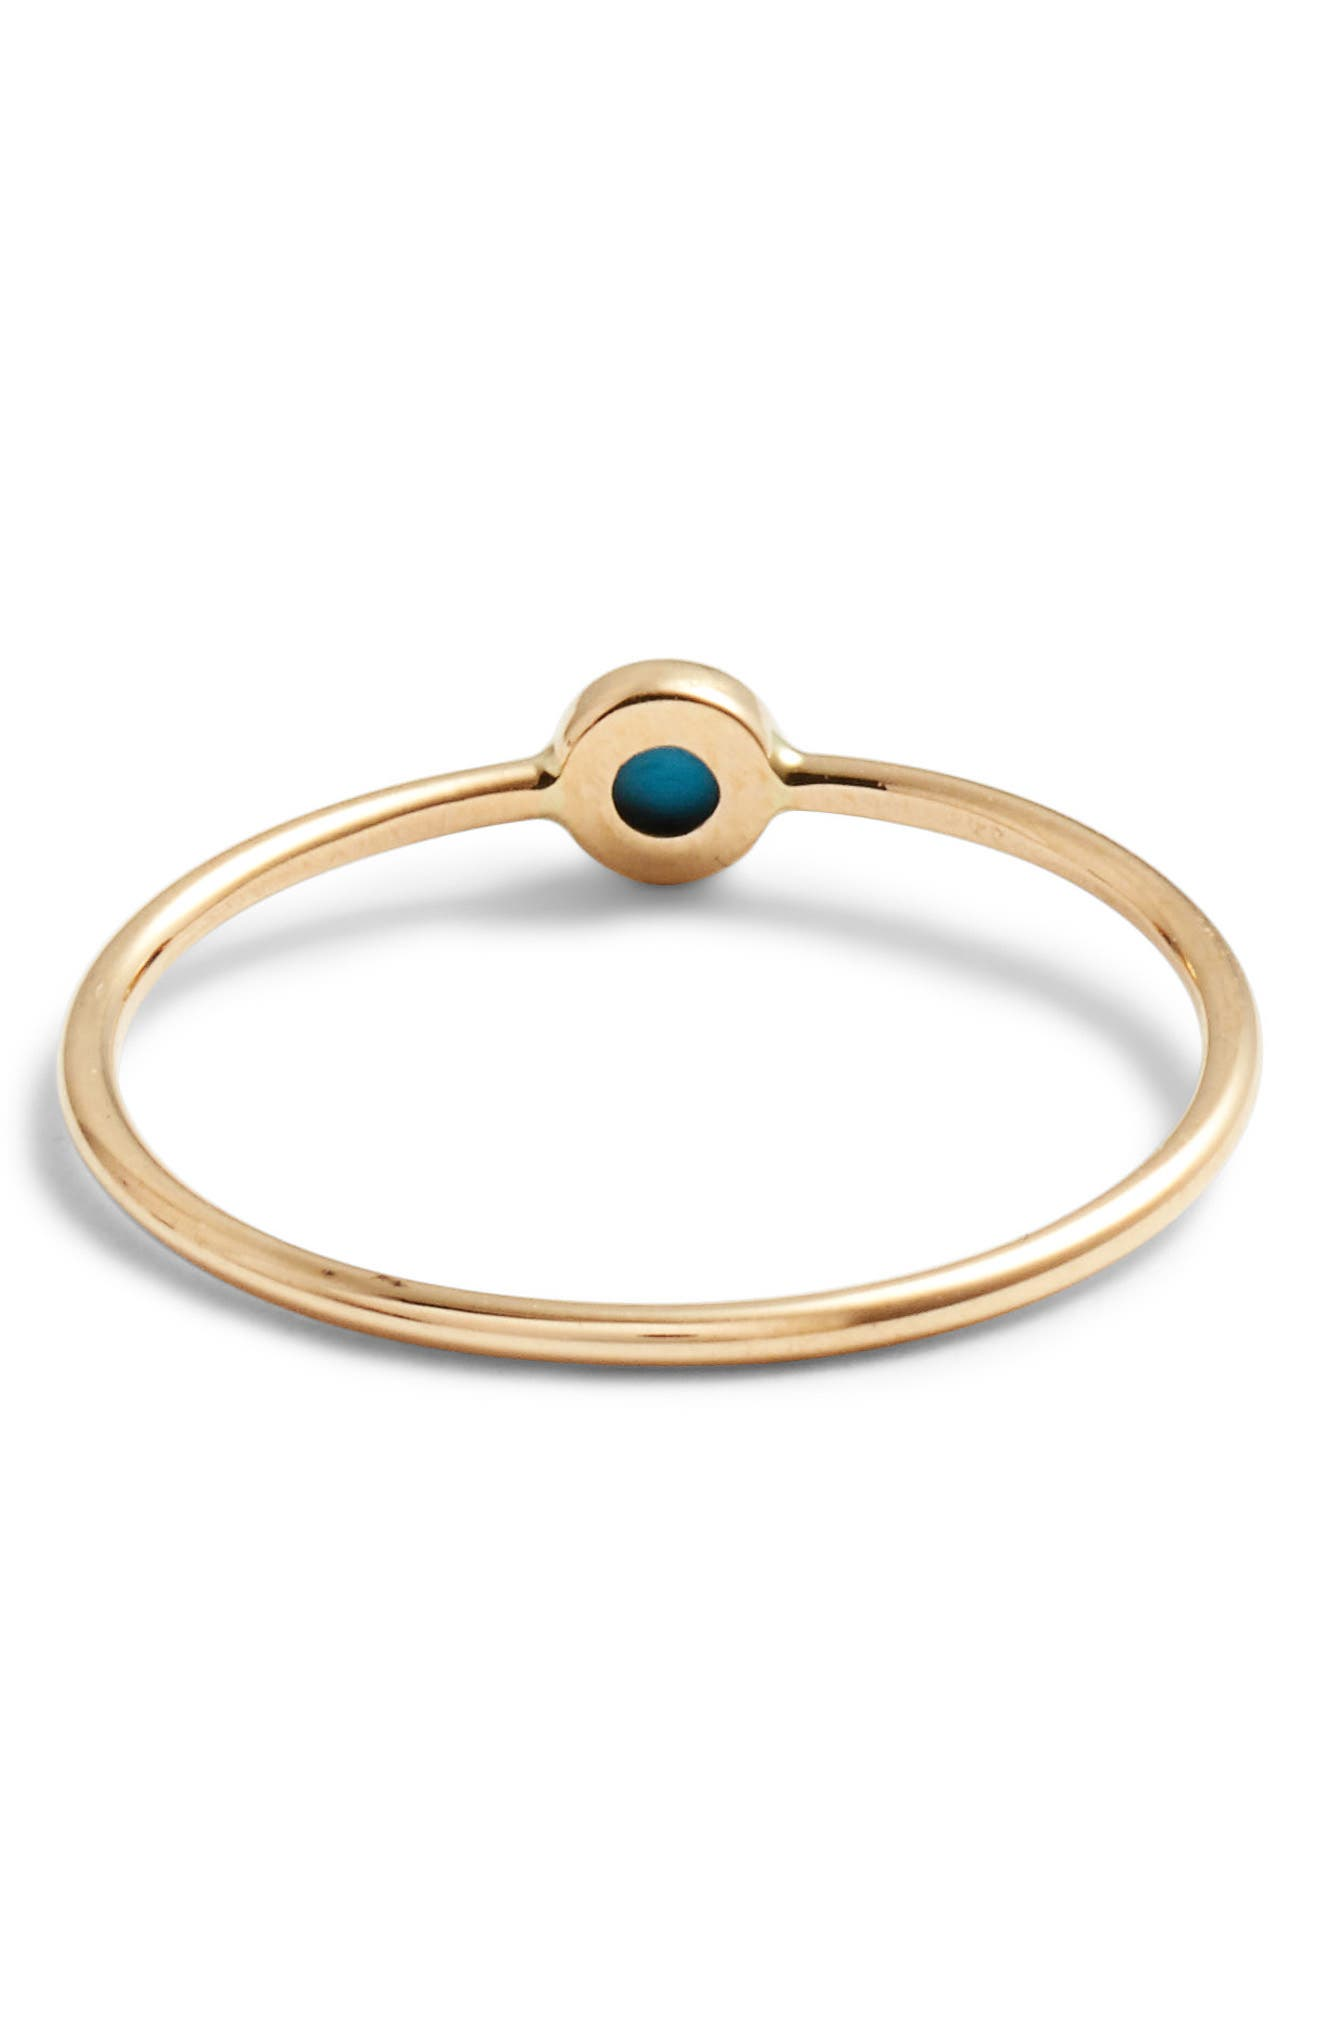 ZOË CHICCO, Turquoise Stacking Ring, Alternate thumbnail 3, color, TURQUOISE